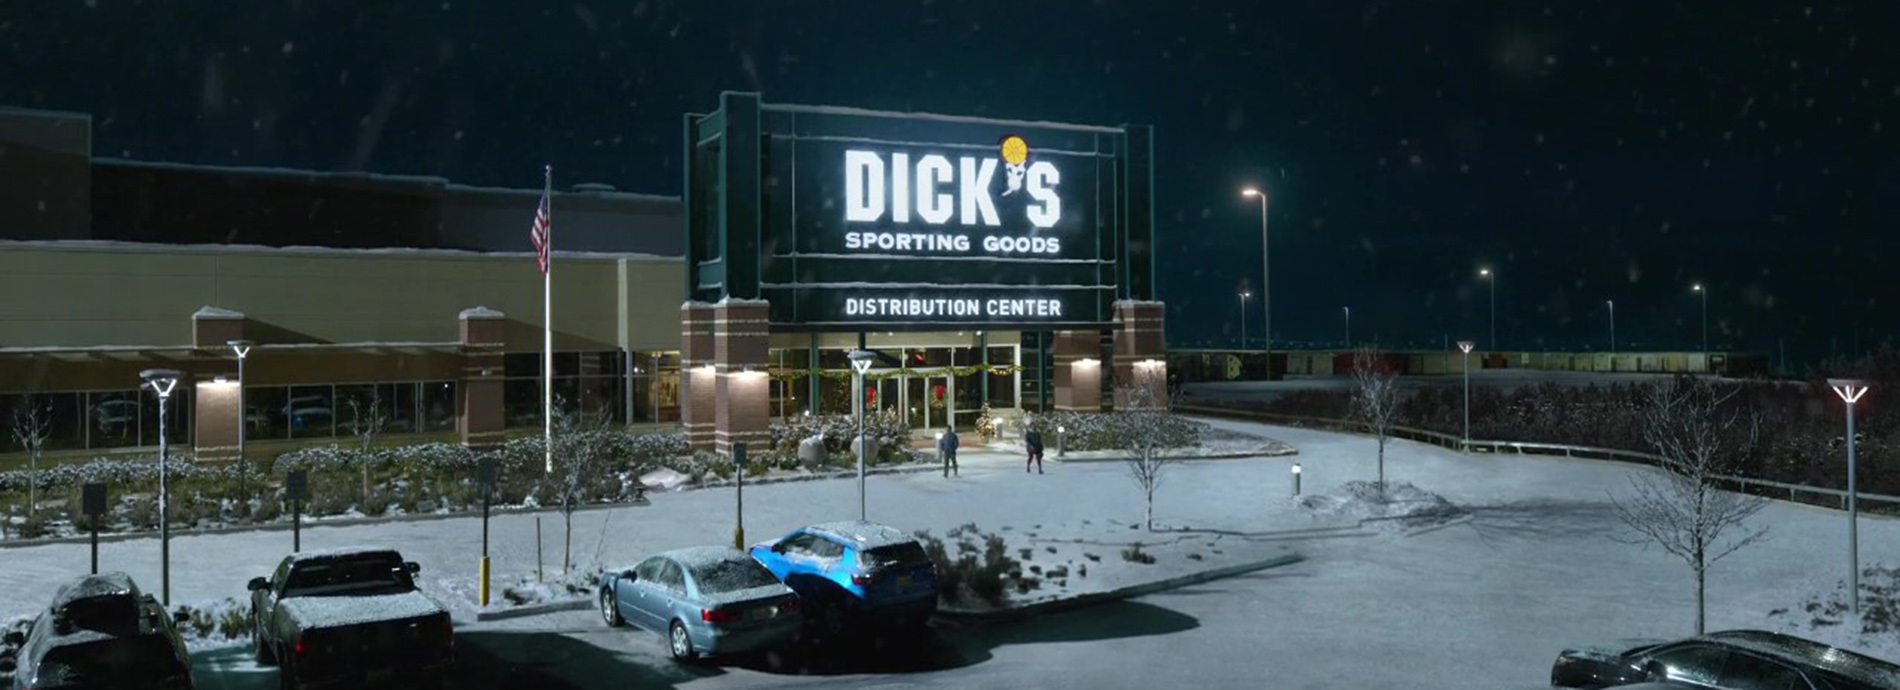 "DICK'S Sporting Goods Kicks Off Holiday Season On November 18 With First-Ever ""10 Days of Black Friday"""